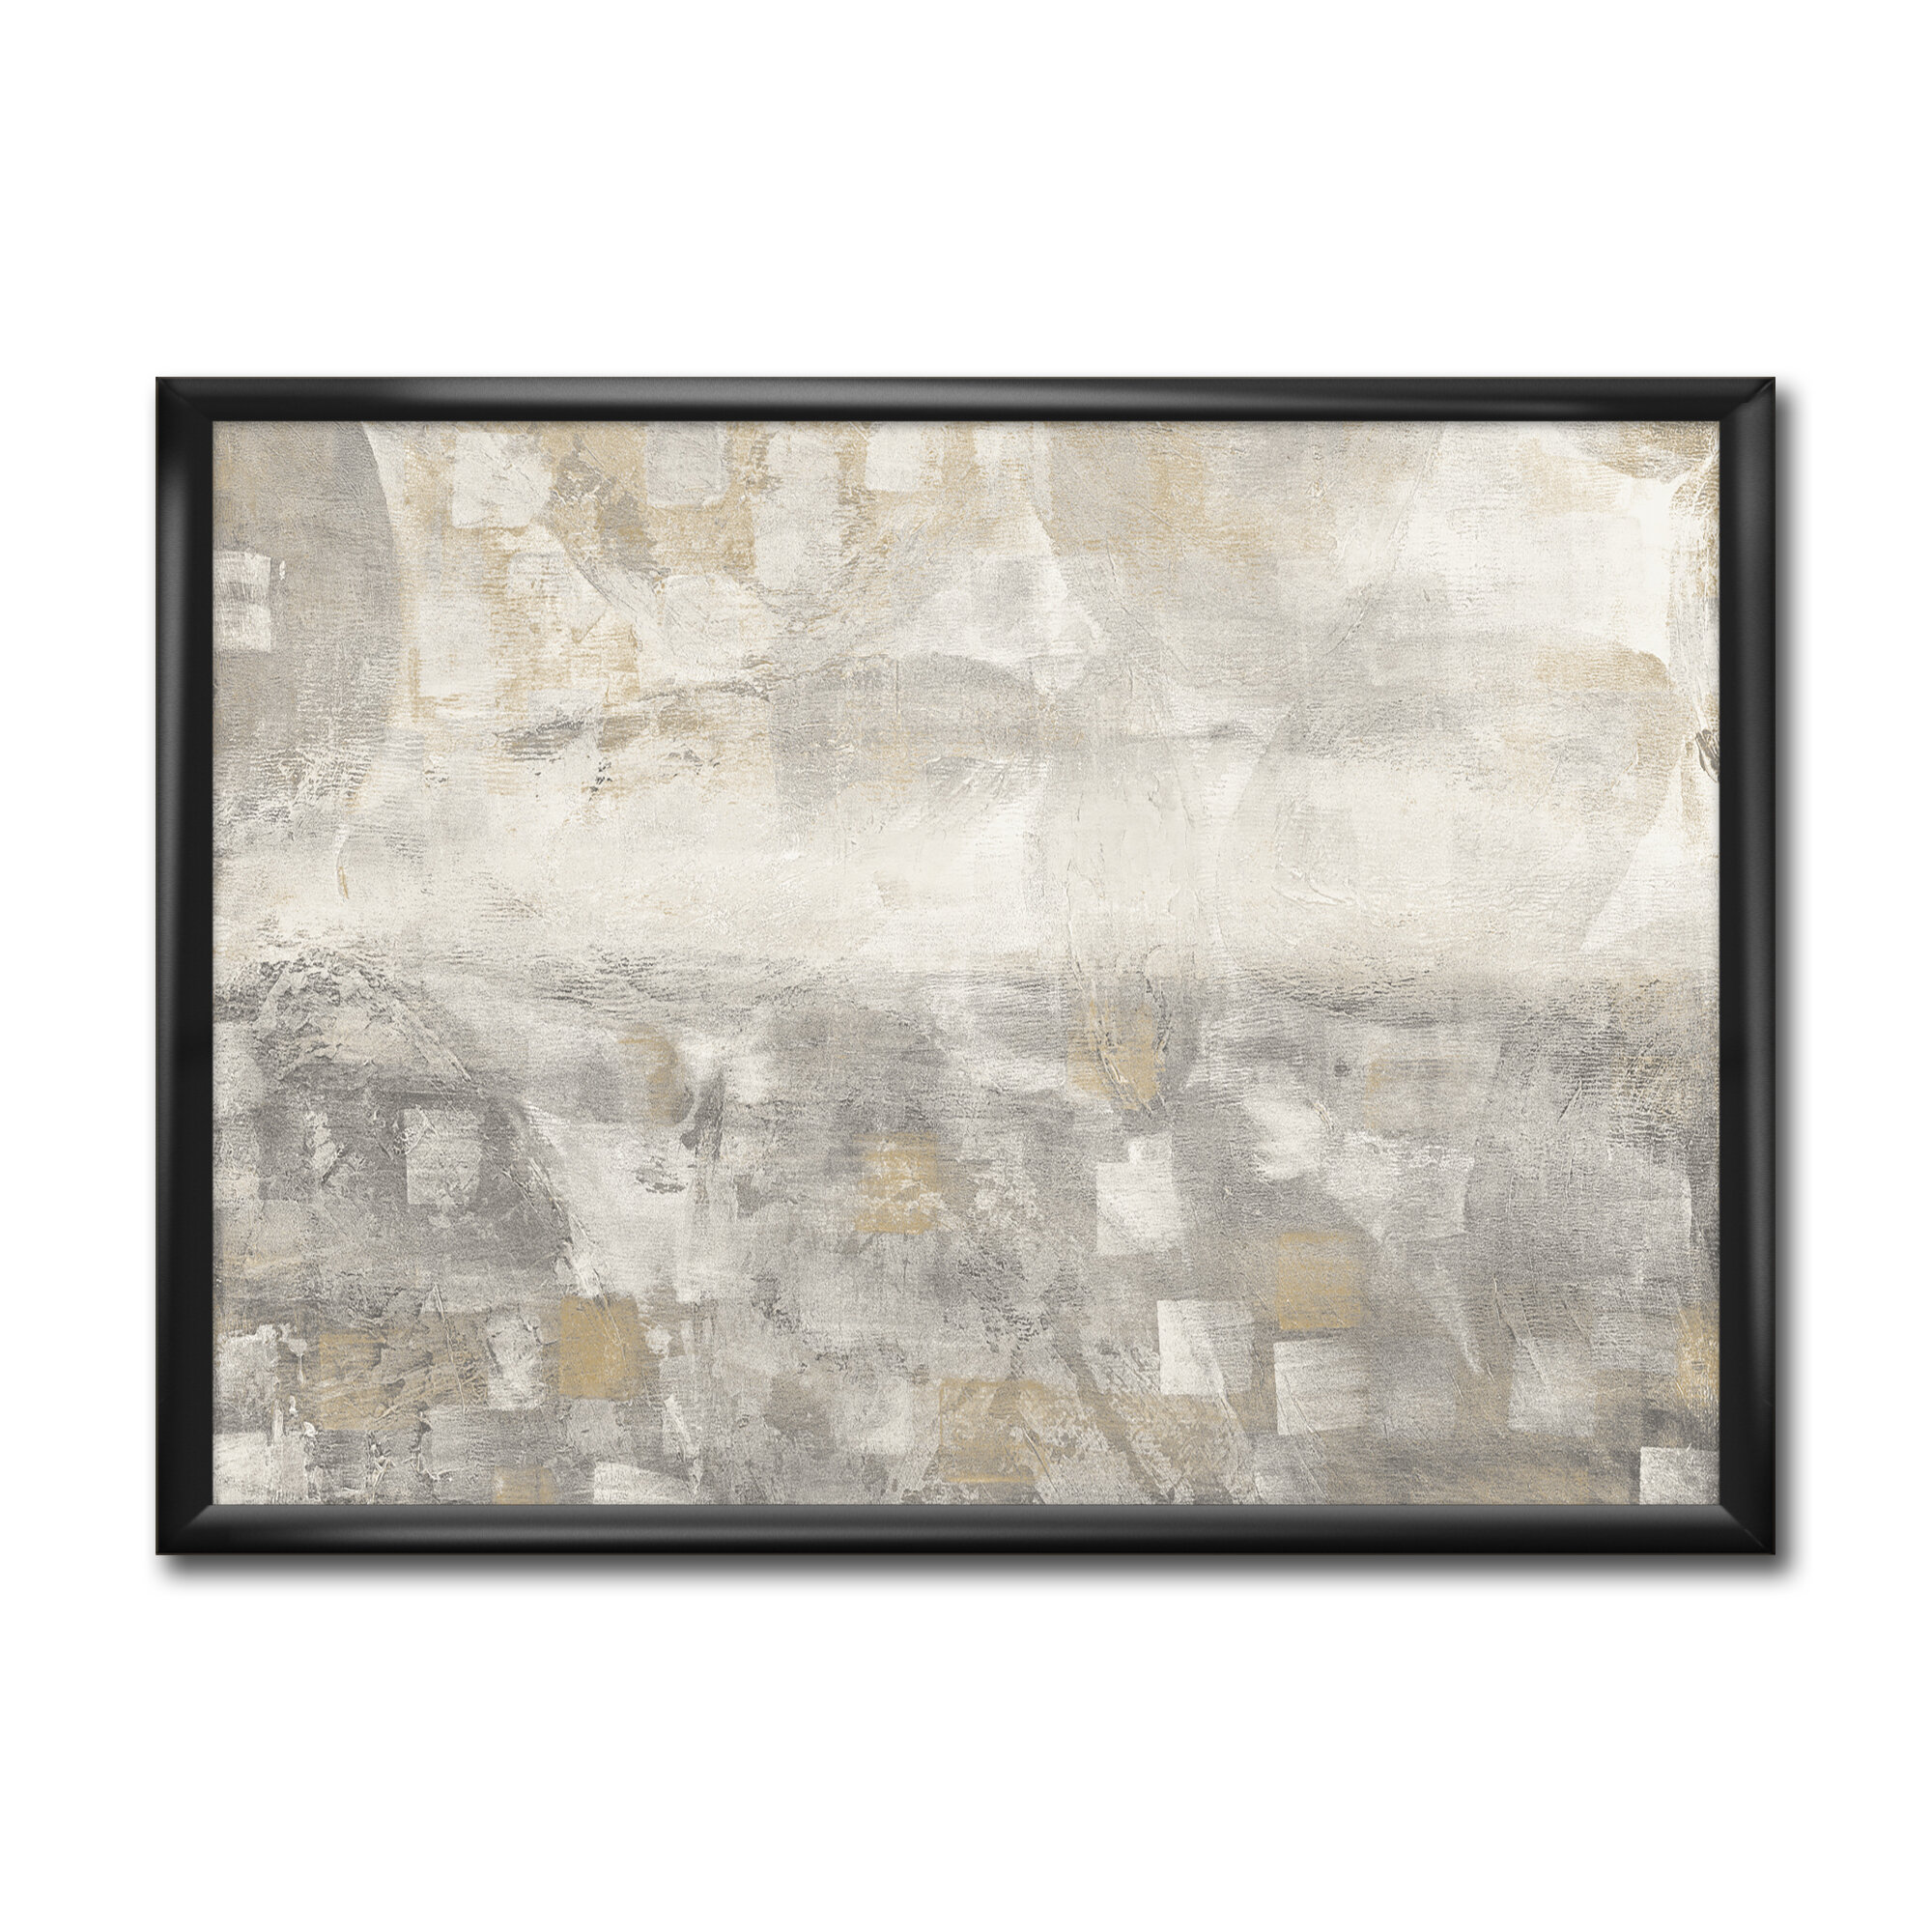 East Urban Home Gray Abstract Watercolor Picture Frame Print On Canvas Wayfair